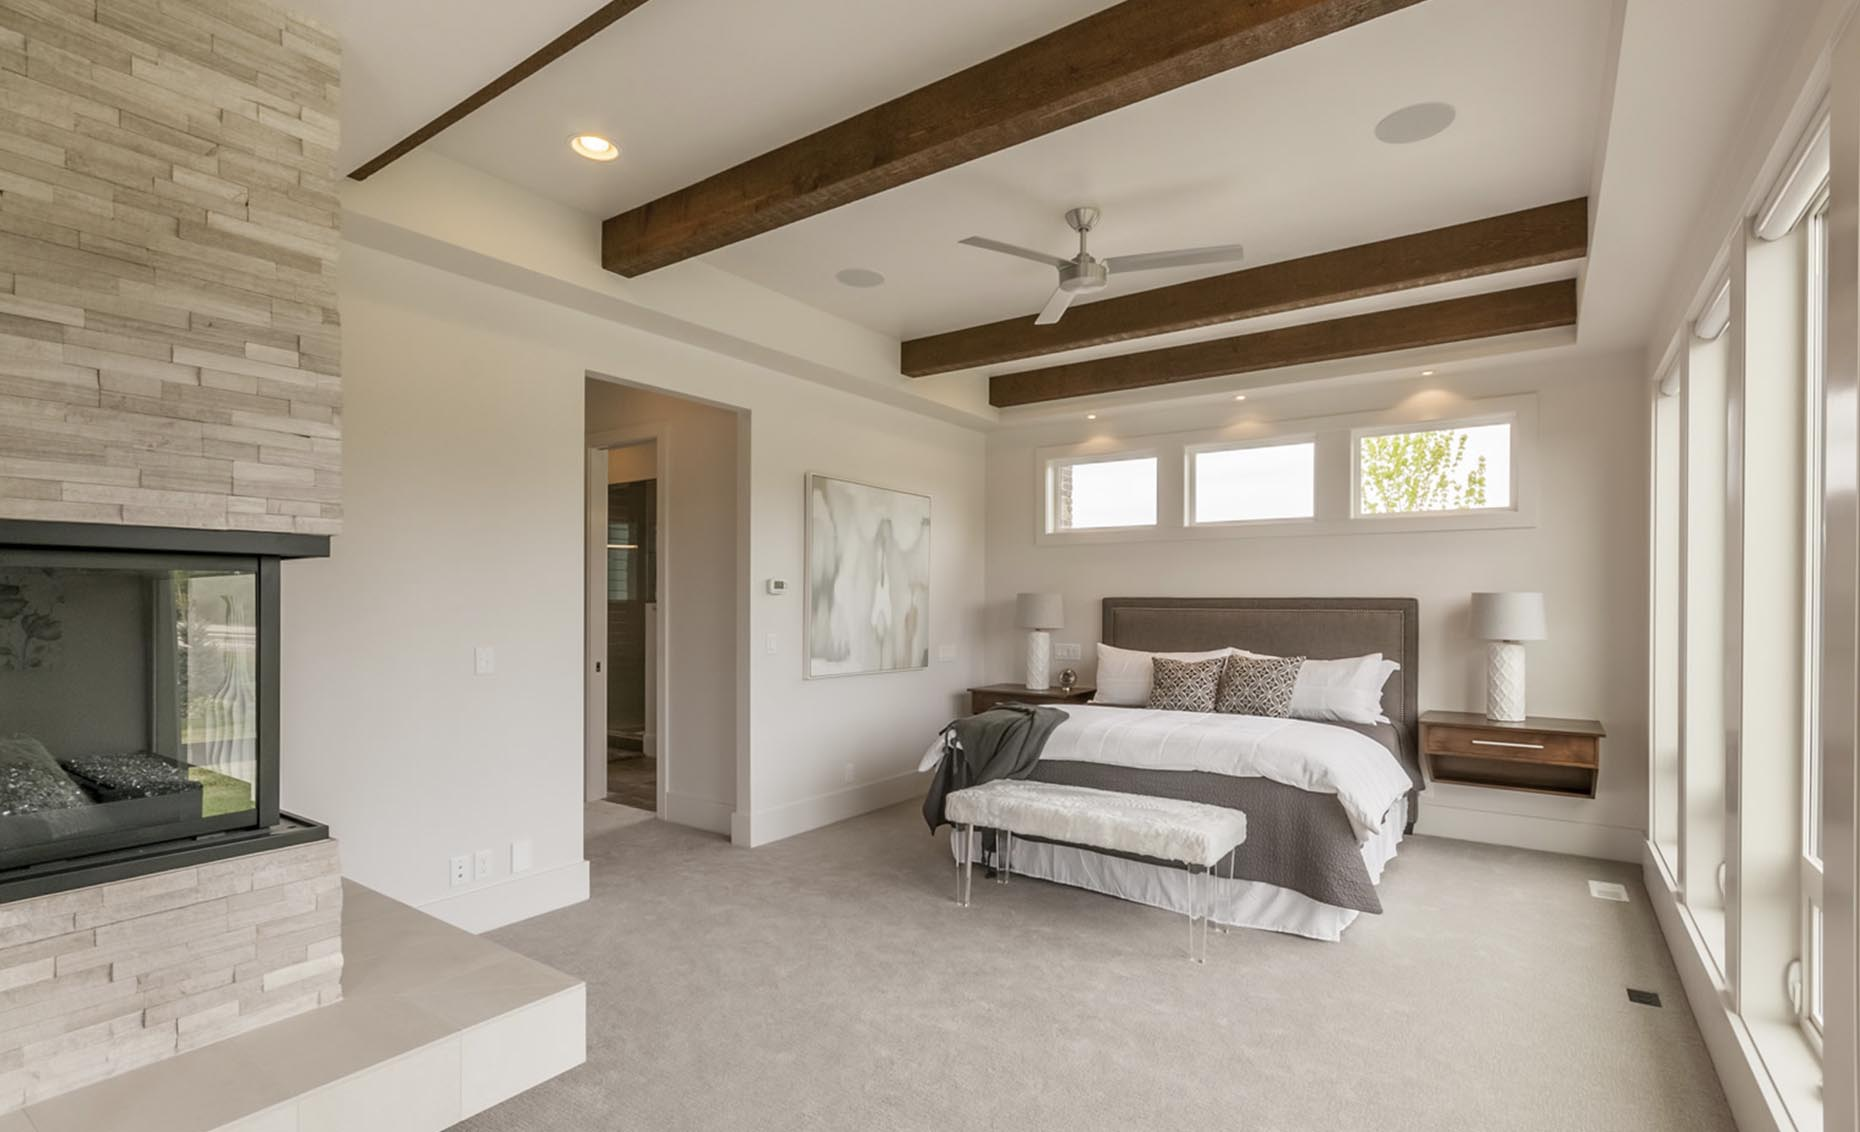 The Salmon Falls House Master Bedroom